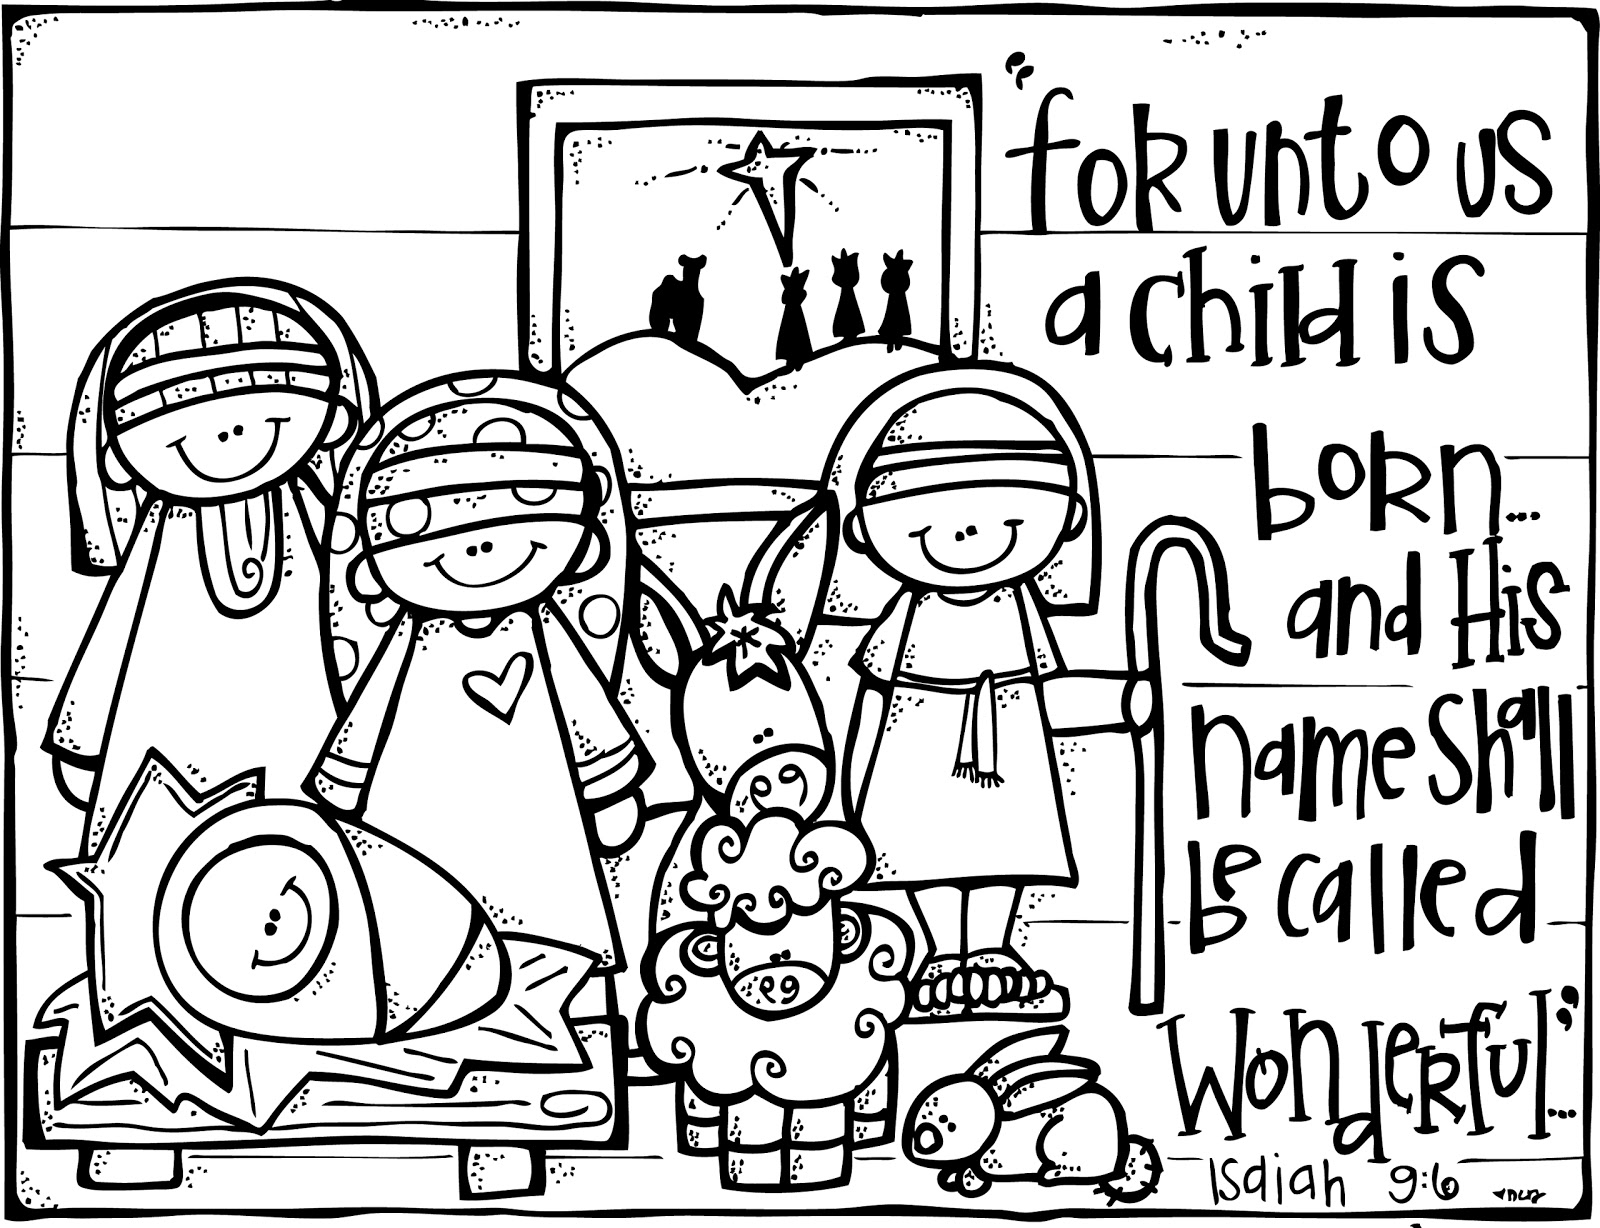 graphic about Nativity Coloring Pages Printable identify Cost-free Printable Nativity Coloring Internet pages for Young children - Suitable